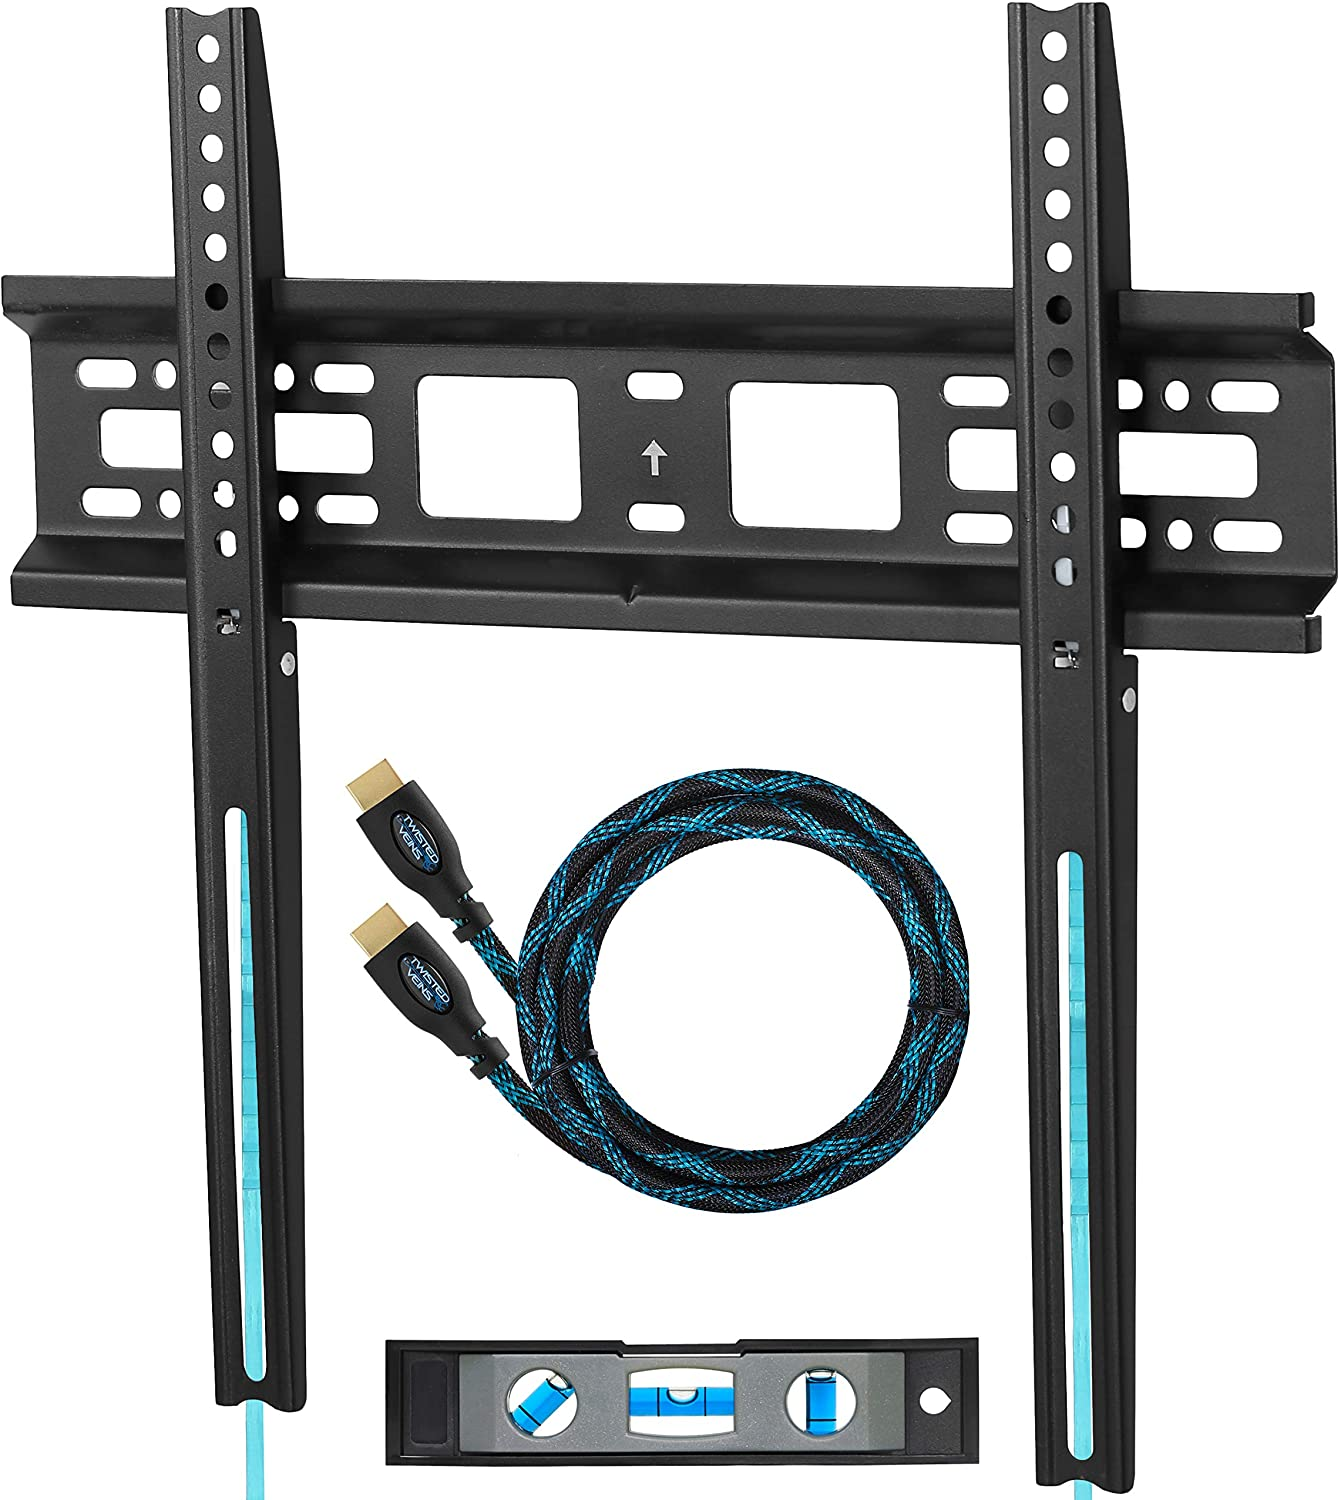 "Cheetah Mounts APFMSB TV Wall Mount Bracket for 20-55"" TVs Up to VESA 400 and 115 lbs Including a Twisted Veins 10' HDMI Cable and a 6\"